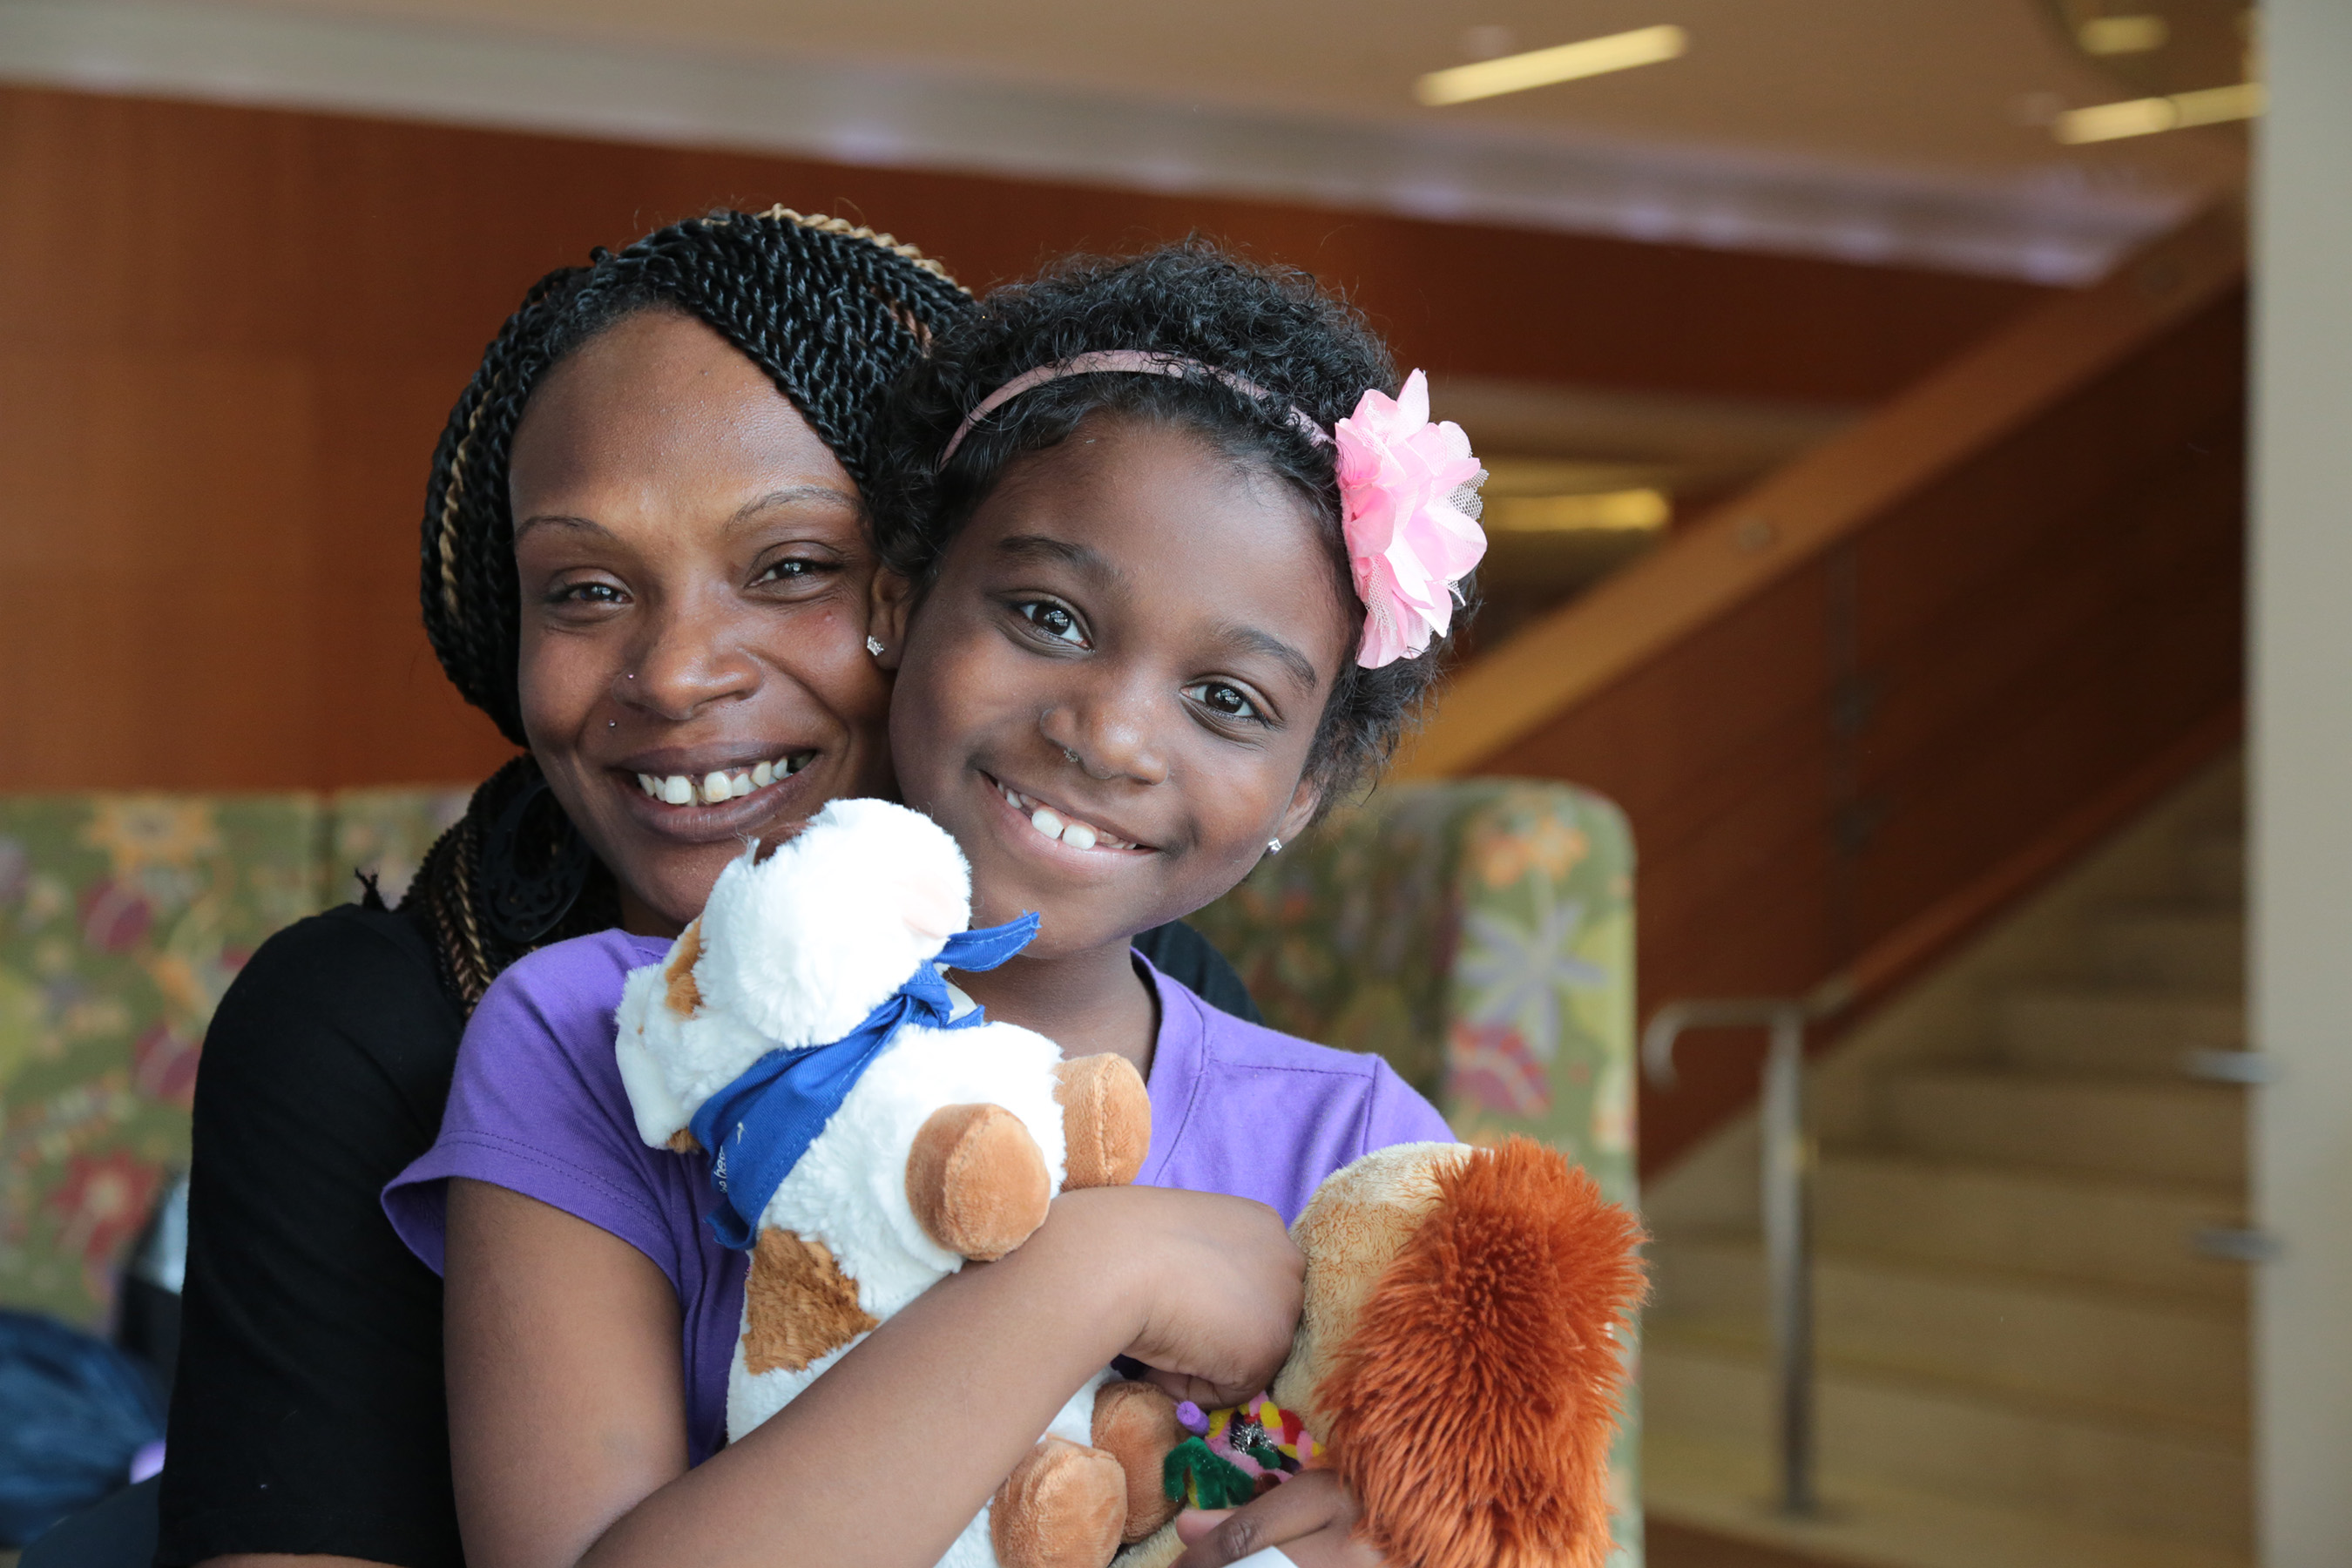 Northwestern Mutual supports strong moms like Fonta Taylor, who stood by daughter Reniyah's side as she battled cancer. The company's Childhood Cancer Program celebrates five years of providing family support and research funding.